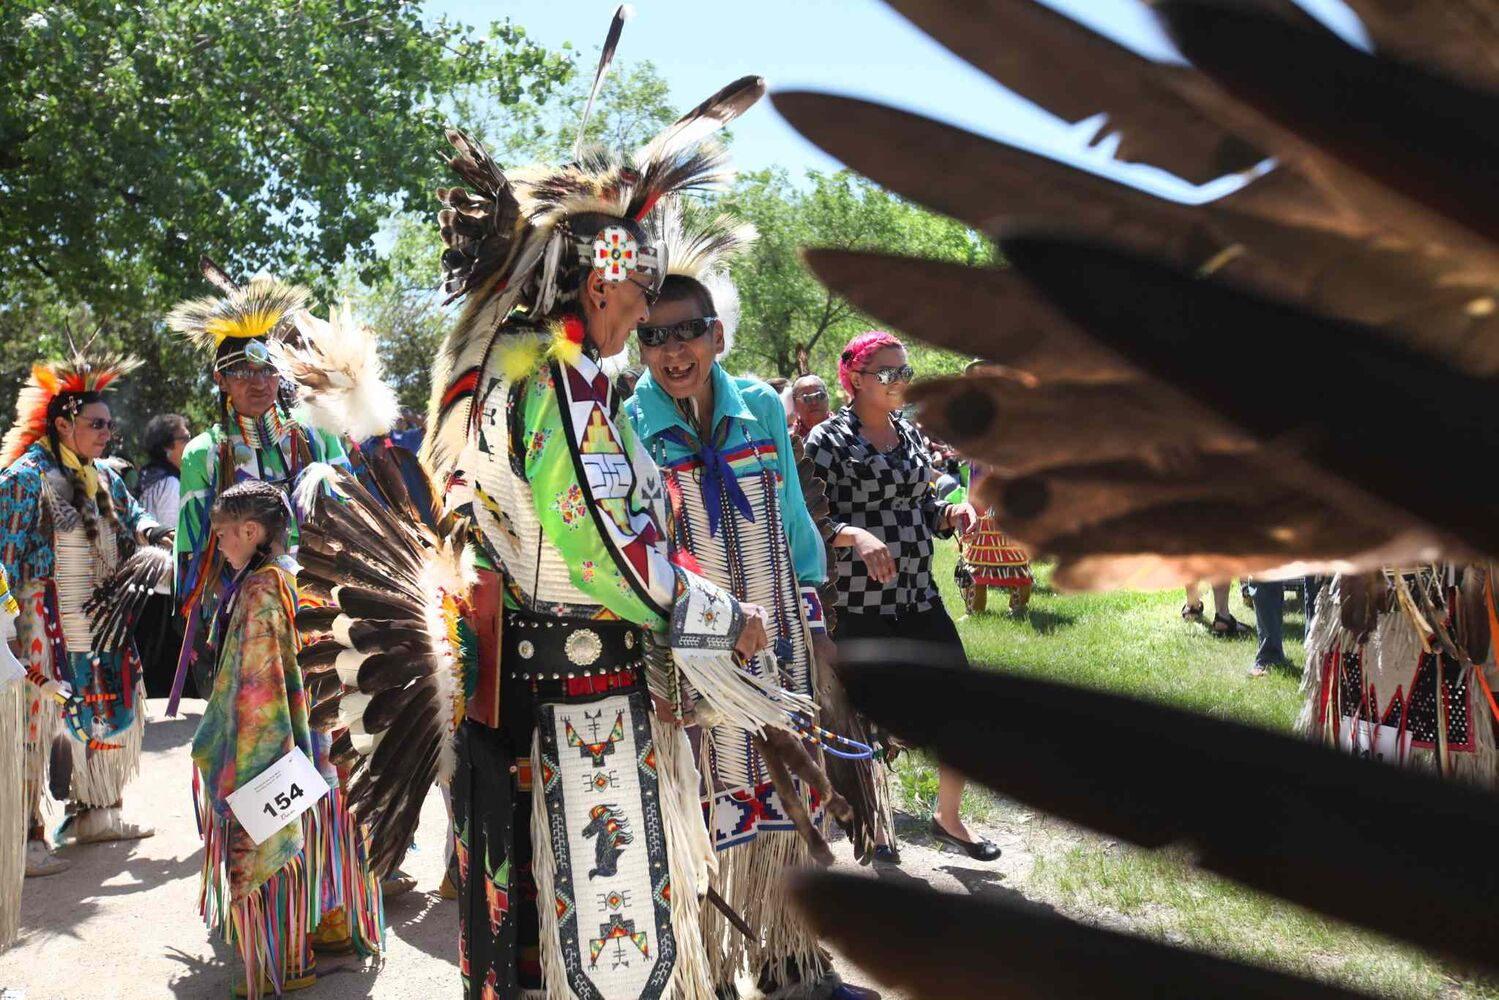 Dancers wait in line for the powwow's grand entry to begin. (Ruth Bonneville / Winnipeg Free Press)